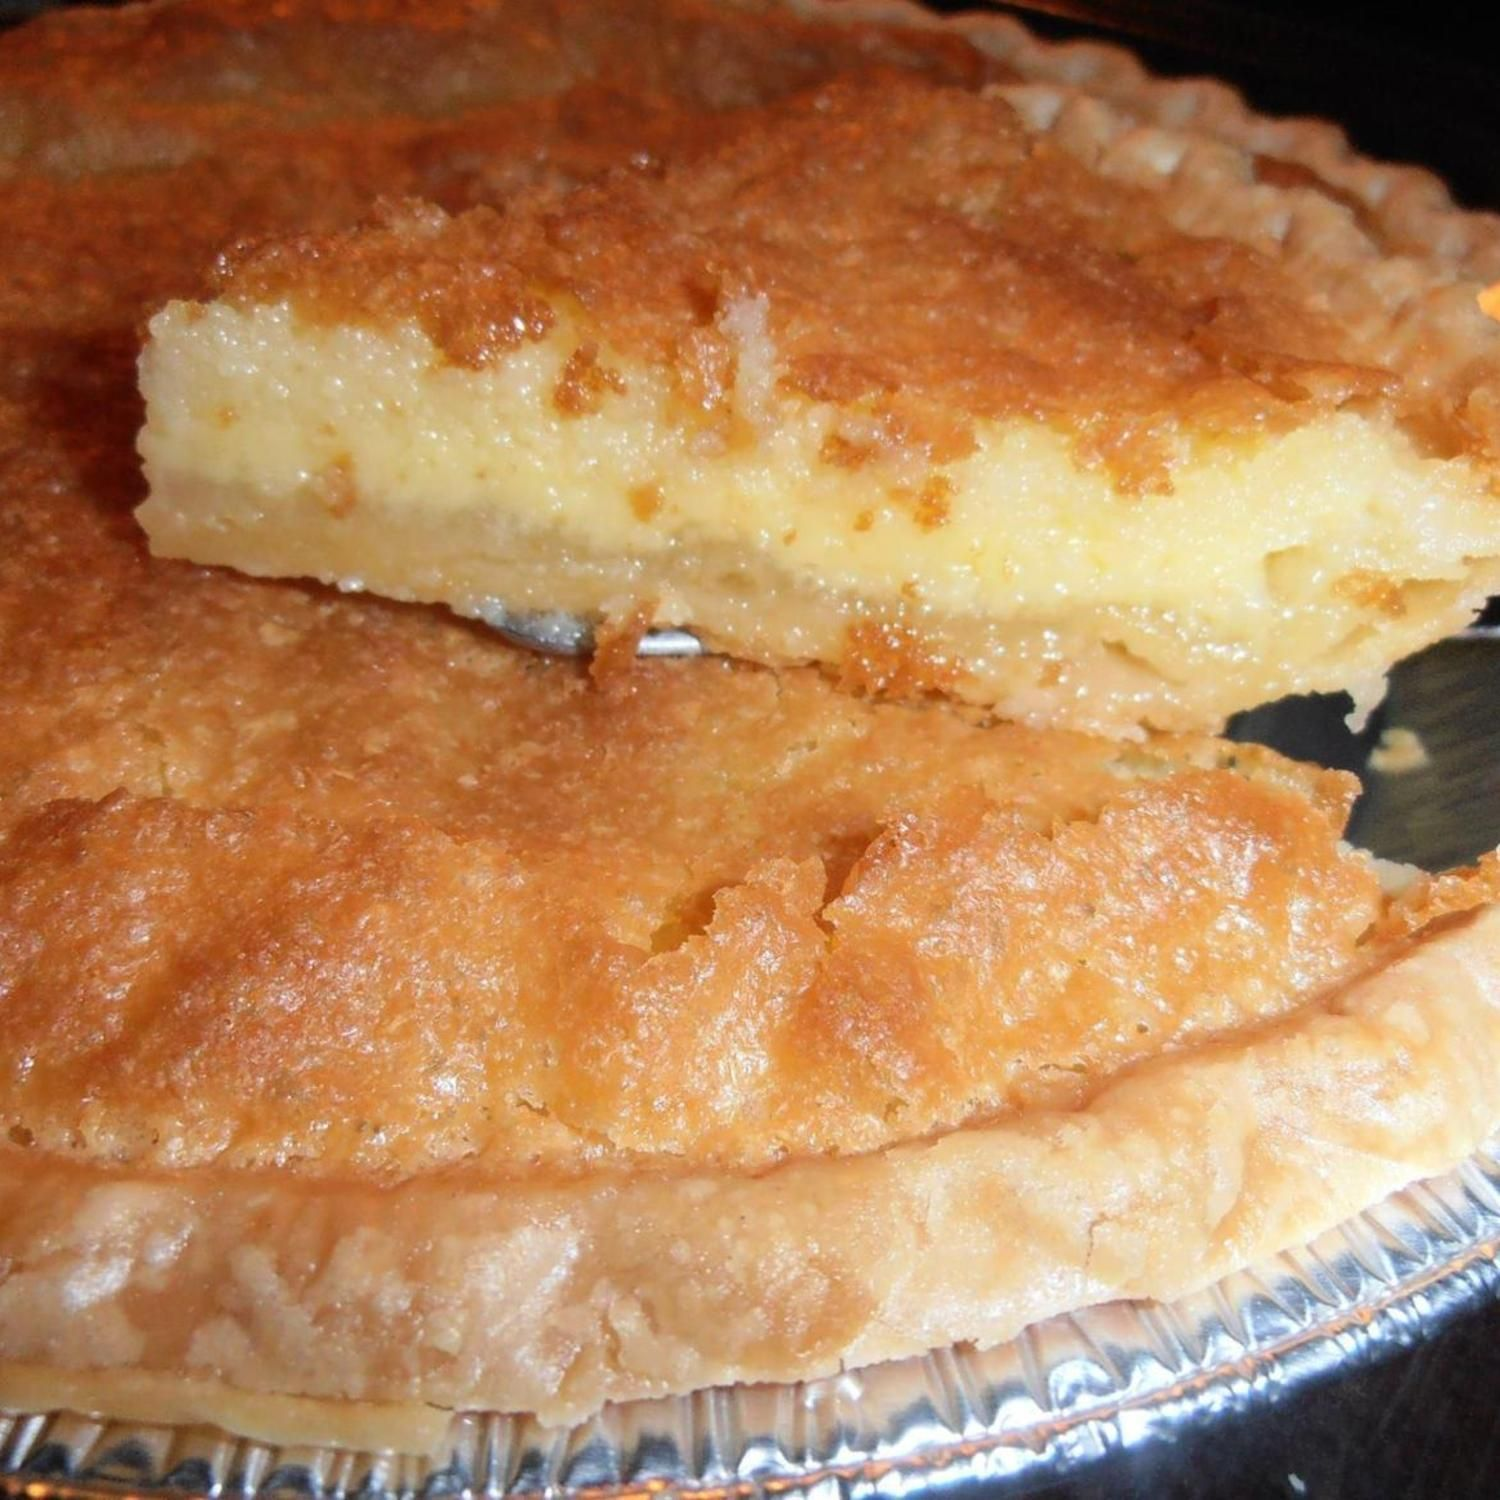 Buttermilk Pie Recipe 4 Just A Pinch Recipes Buttermilk Pie Recipe Buttermilk Pie Desserts